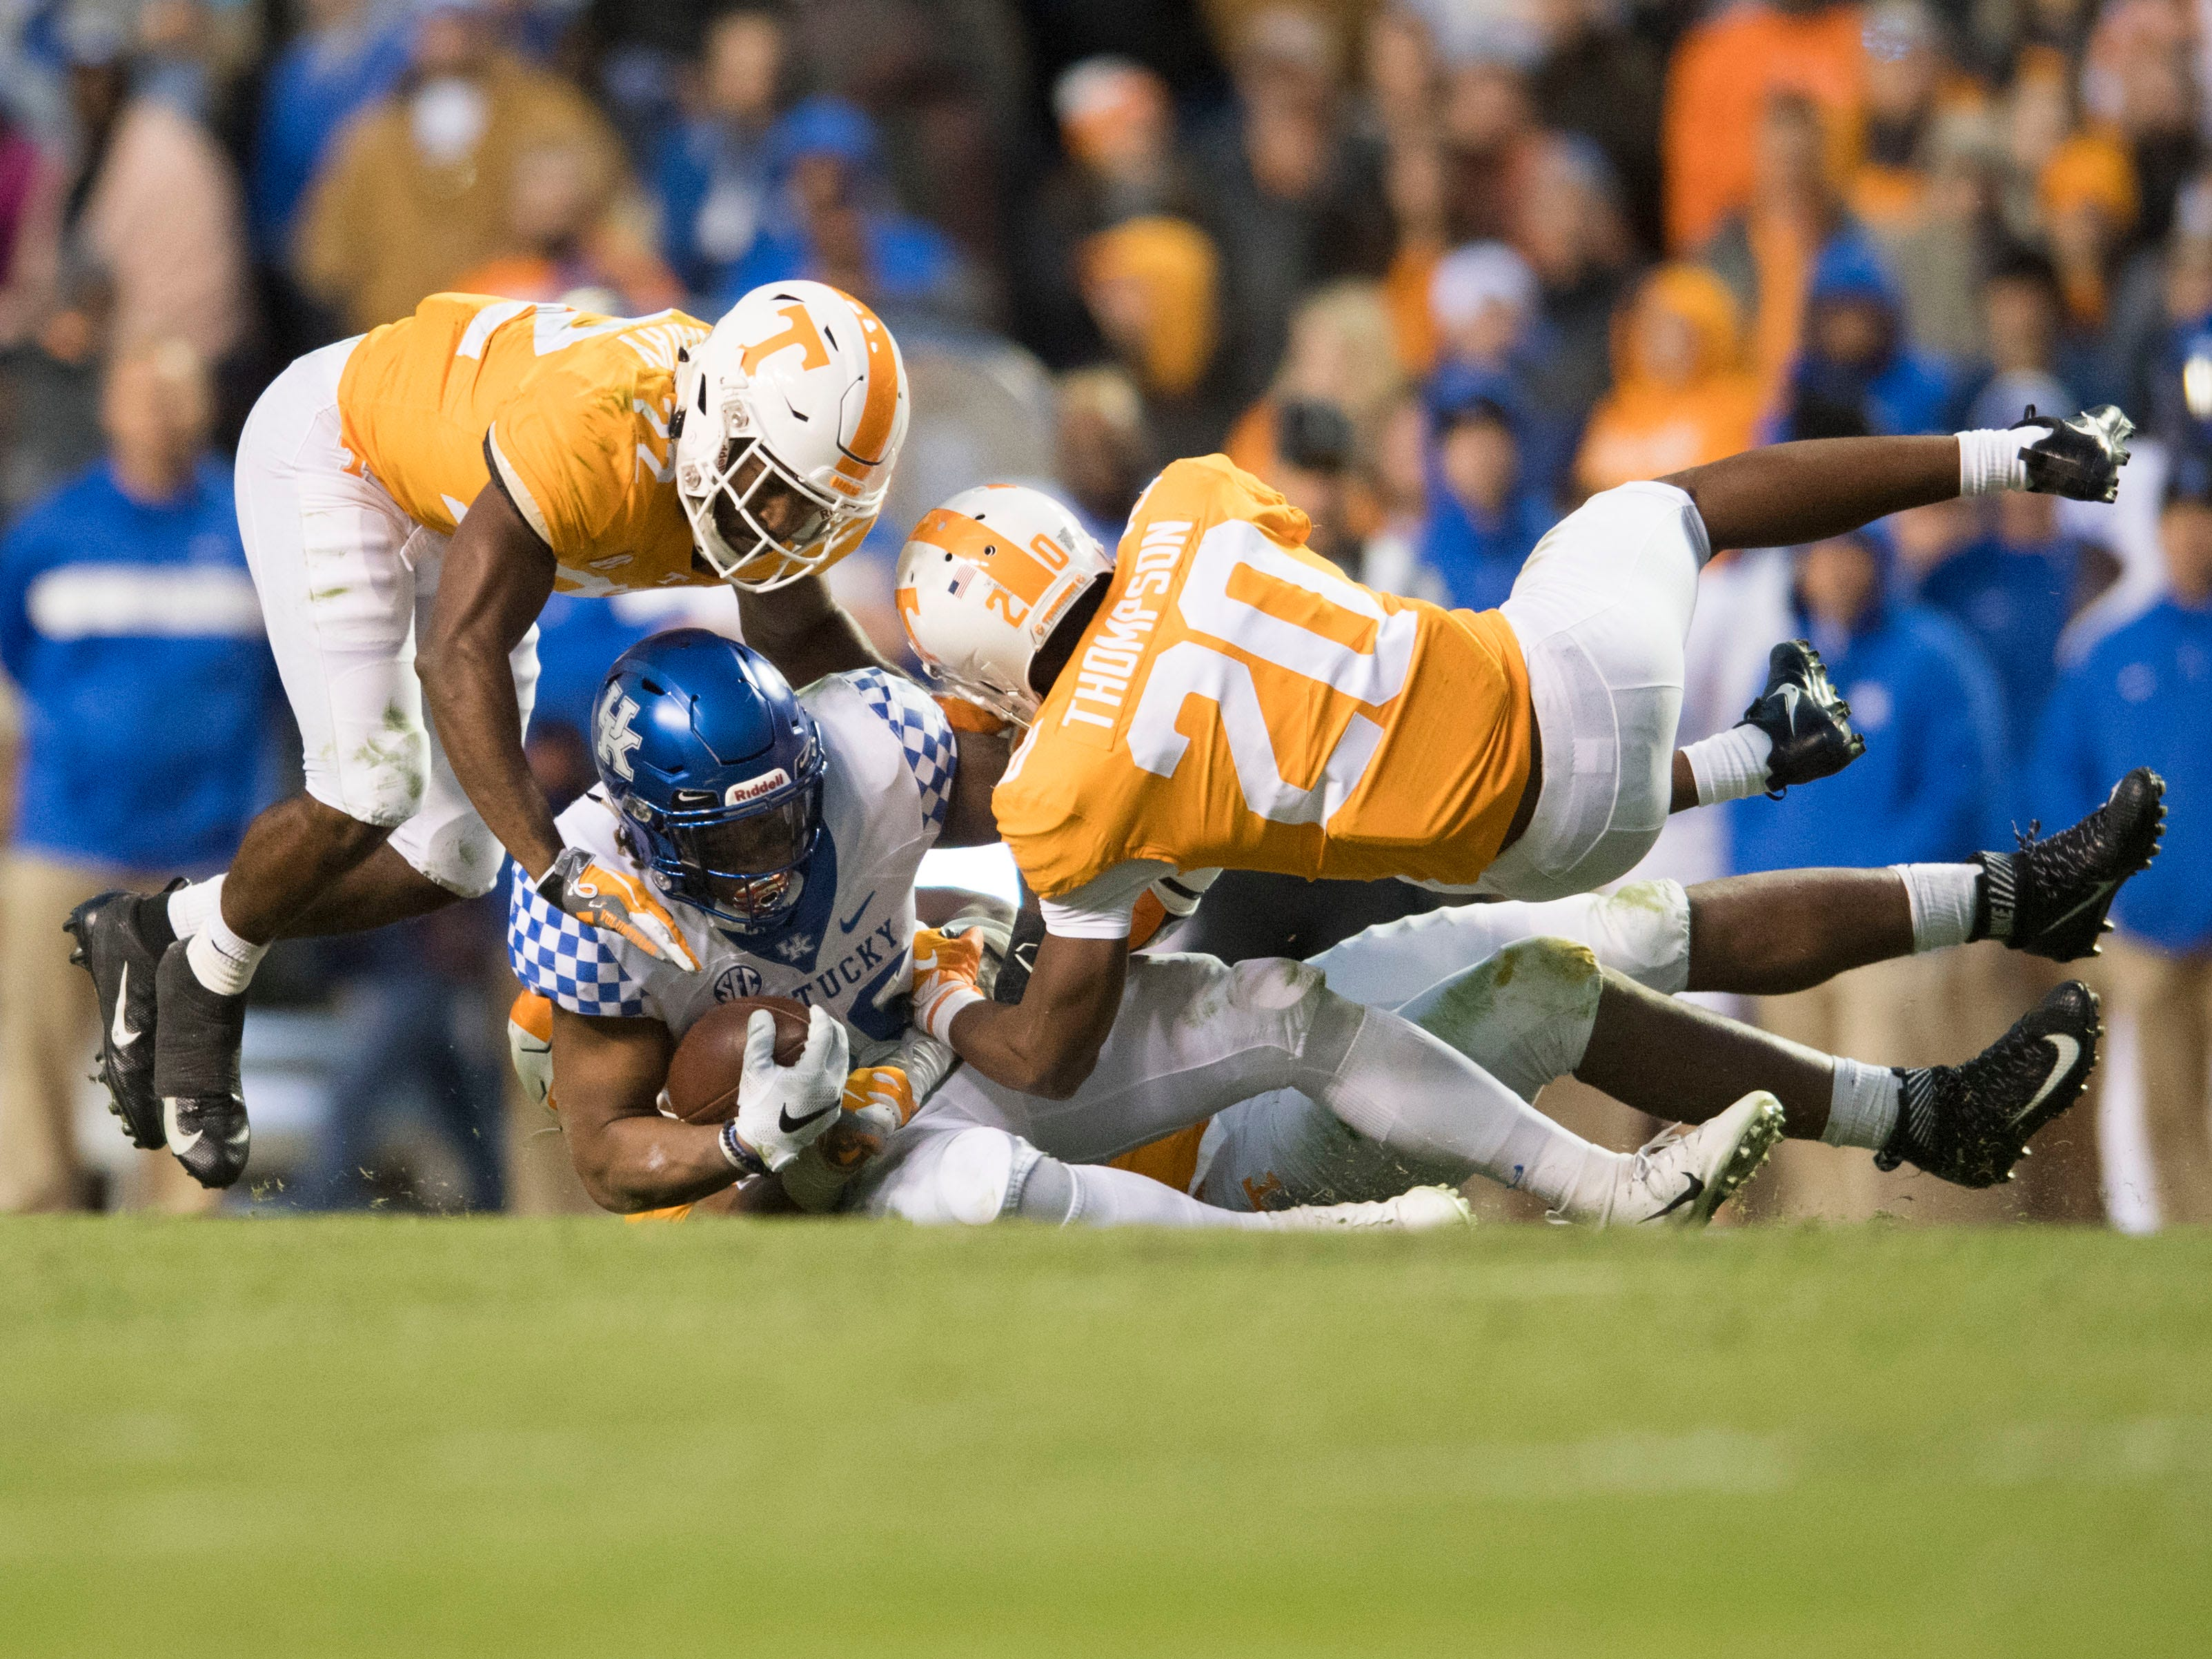 Kentucky running back Benny Snell Jr. (26) goes down under Tennessee defensive backa Micah Abernathy (22) and Bryce Thompson (20) during a game between Tennessee and Kentucky at Neyland Stadium in Knoxville, Tennessee on Saturday, November 10, 2018.